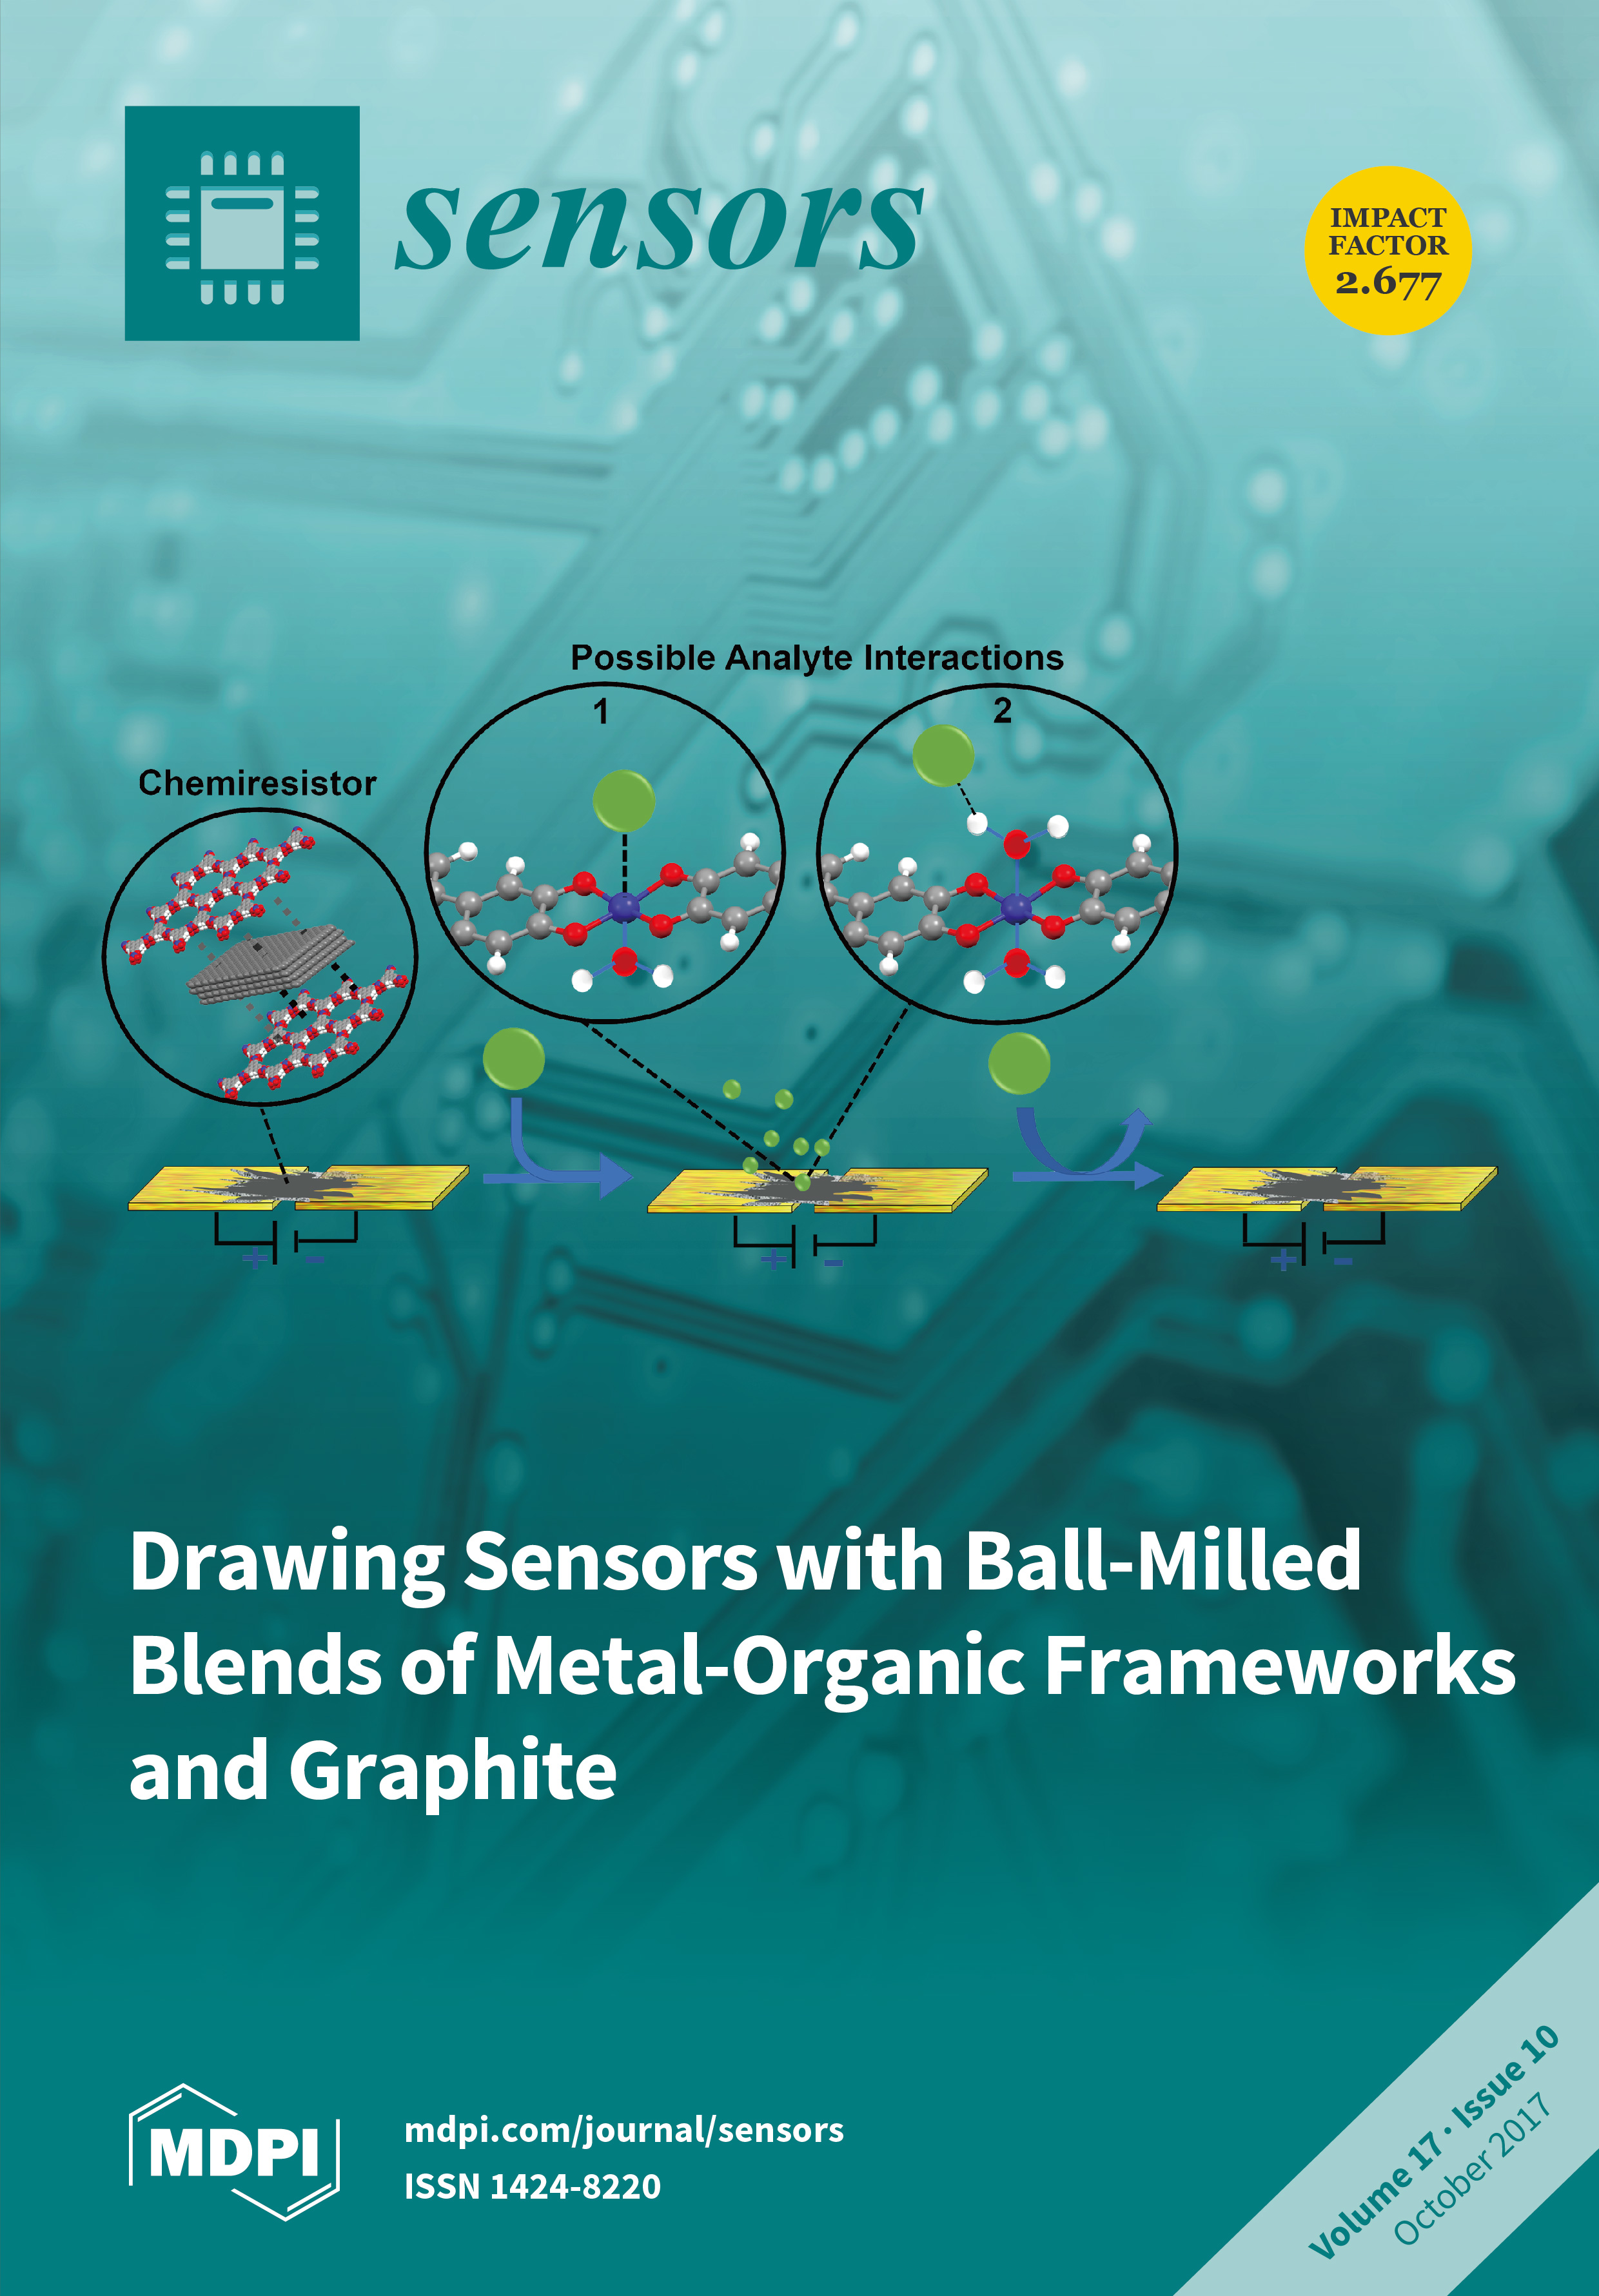 Sensors October 2017 Browse Articles Topic Relays Switched And Loaded From Same Power Source Read 2215 More Mirica Co Workers Report A Simple Method For Drawing Chemiresistive On Paper Using Blends